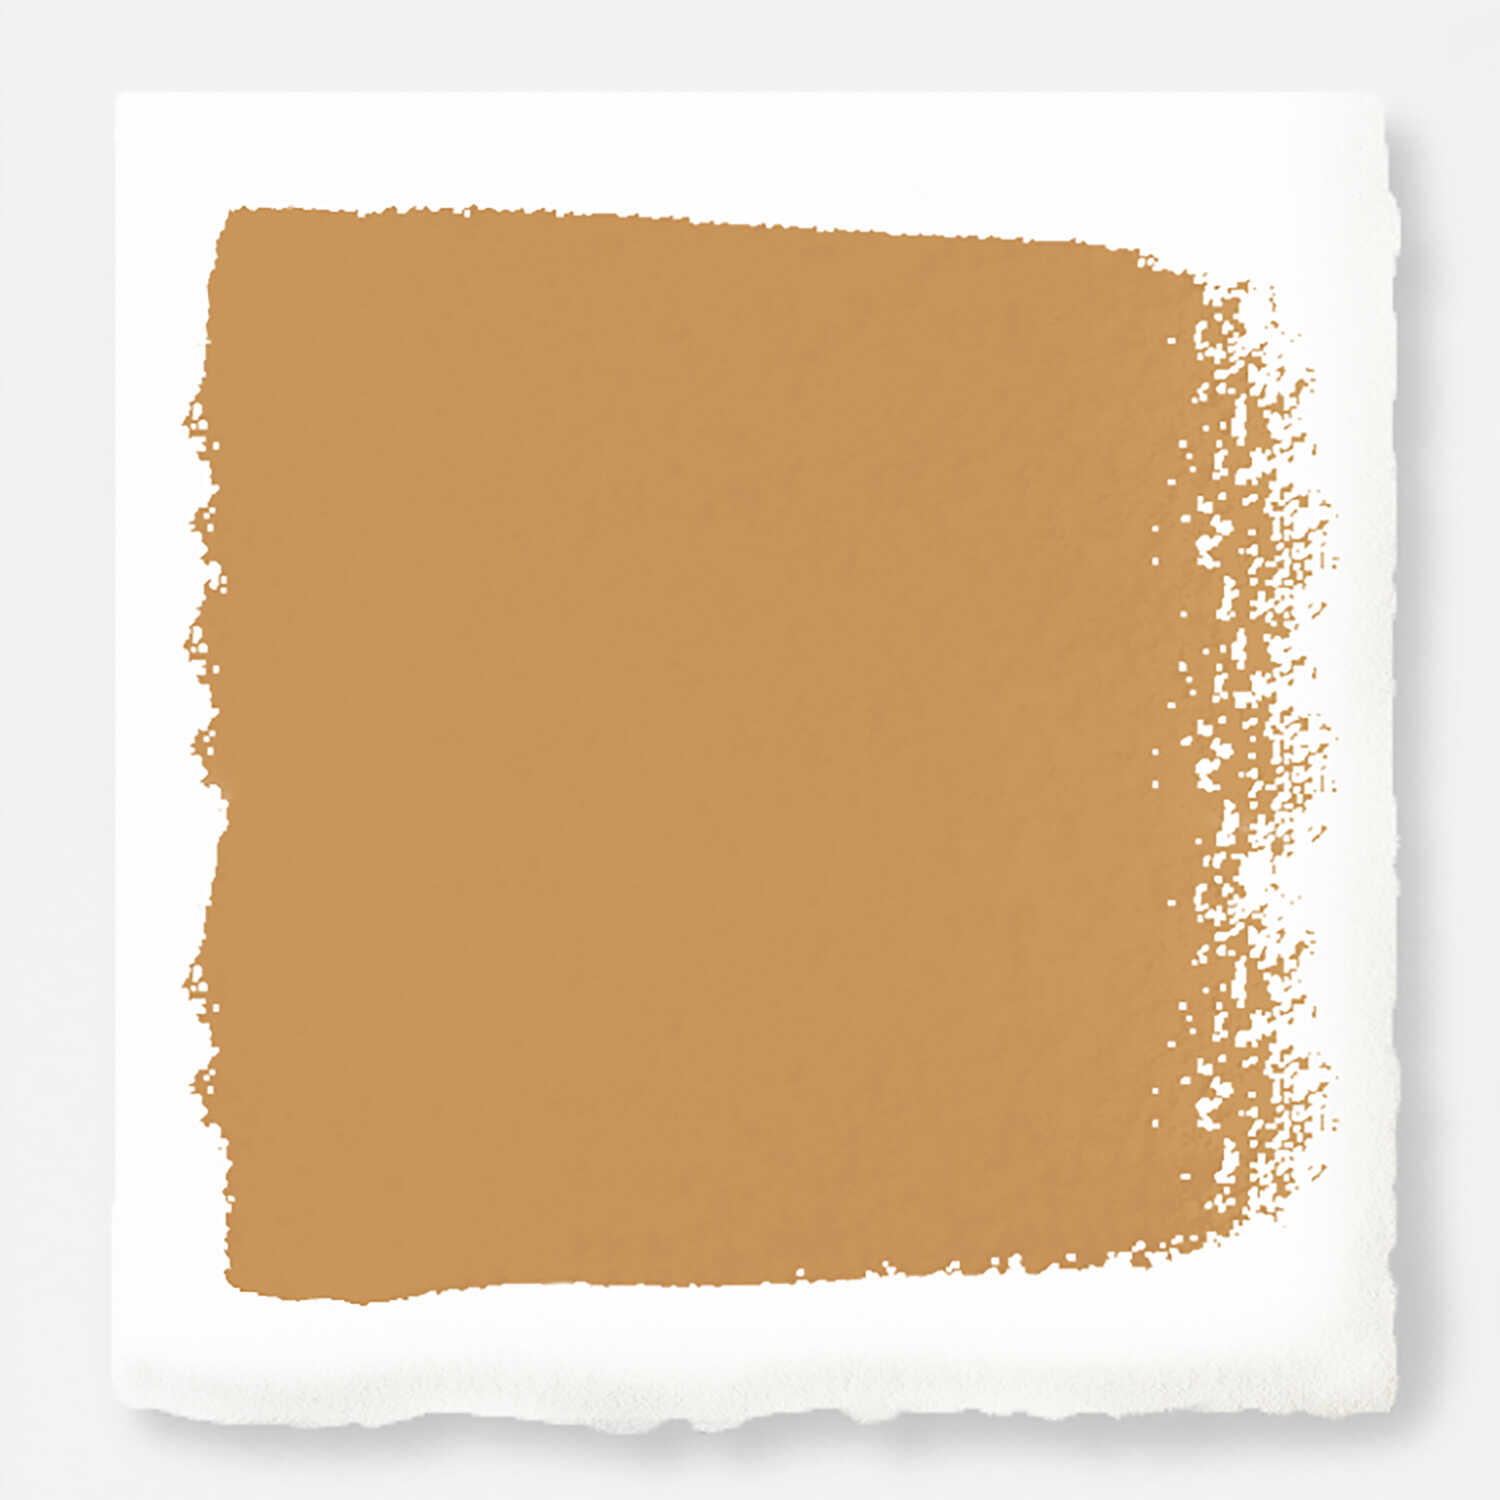 Magnolia Home  Flat  Brushed Clay  Exterior Paint and Primer  1 gal.